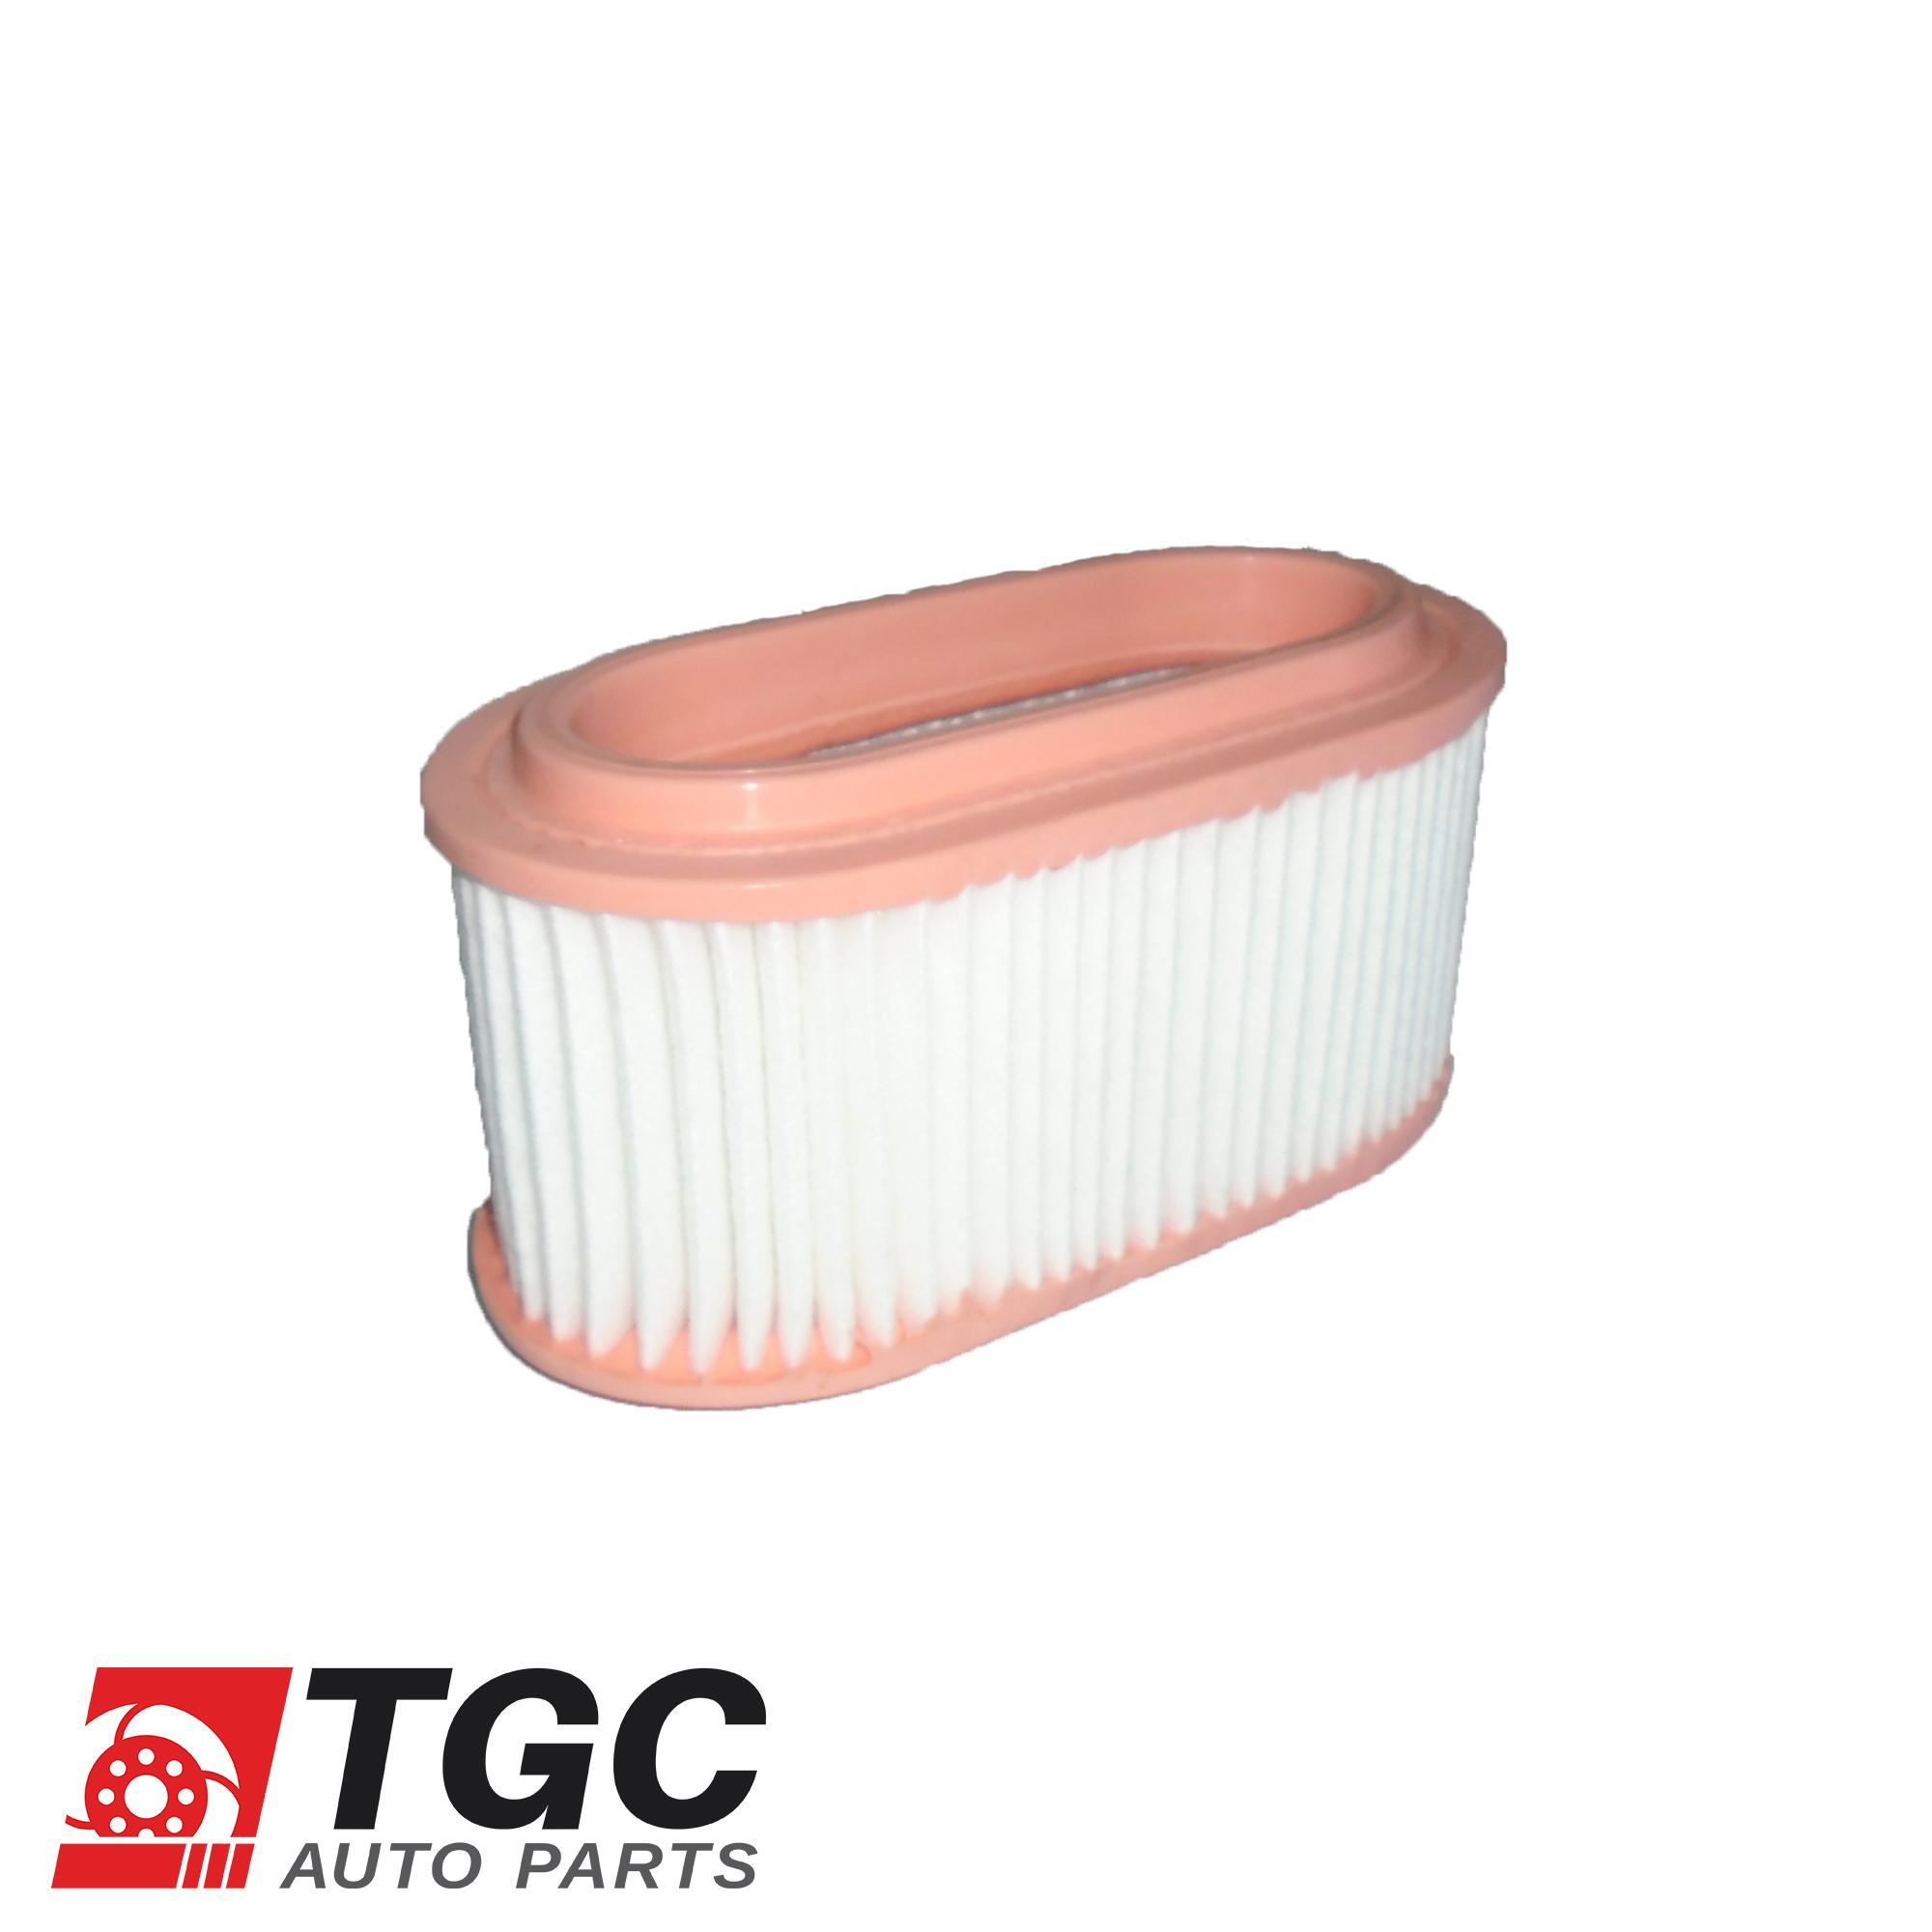 Air Filter Car For Sale Engine Online Brands Prices 2011 Mazda 3 Fuel Fleetmax Fas 8337 Hyundai H100 Porter 2007 2016